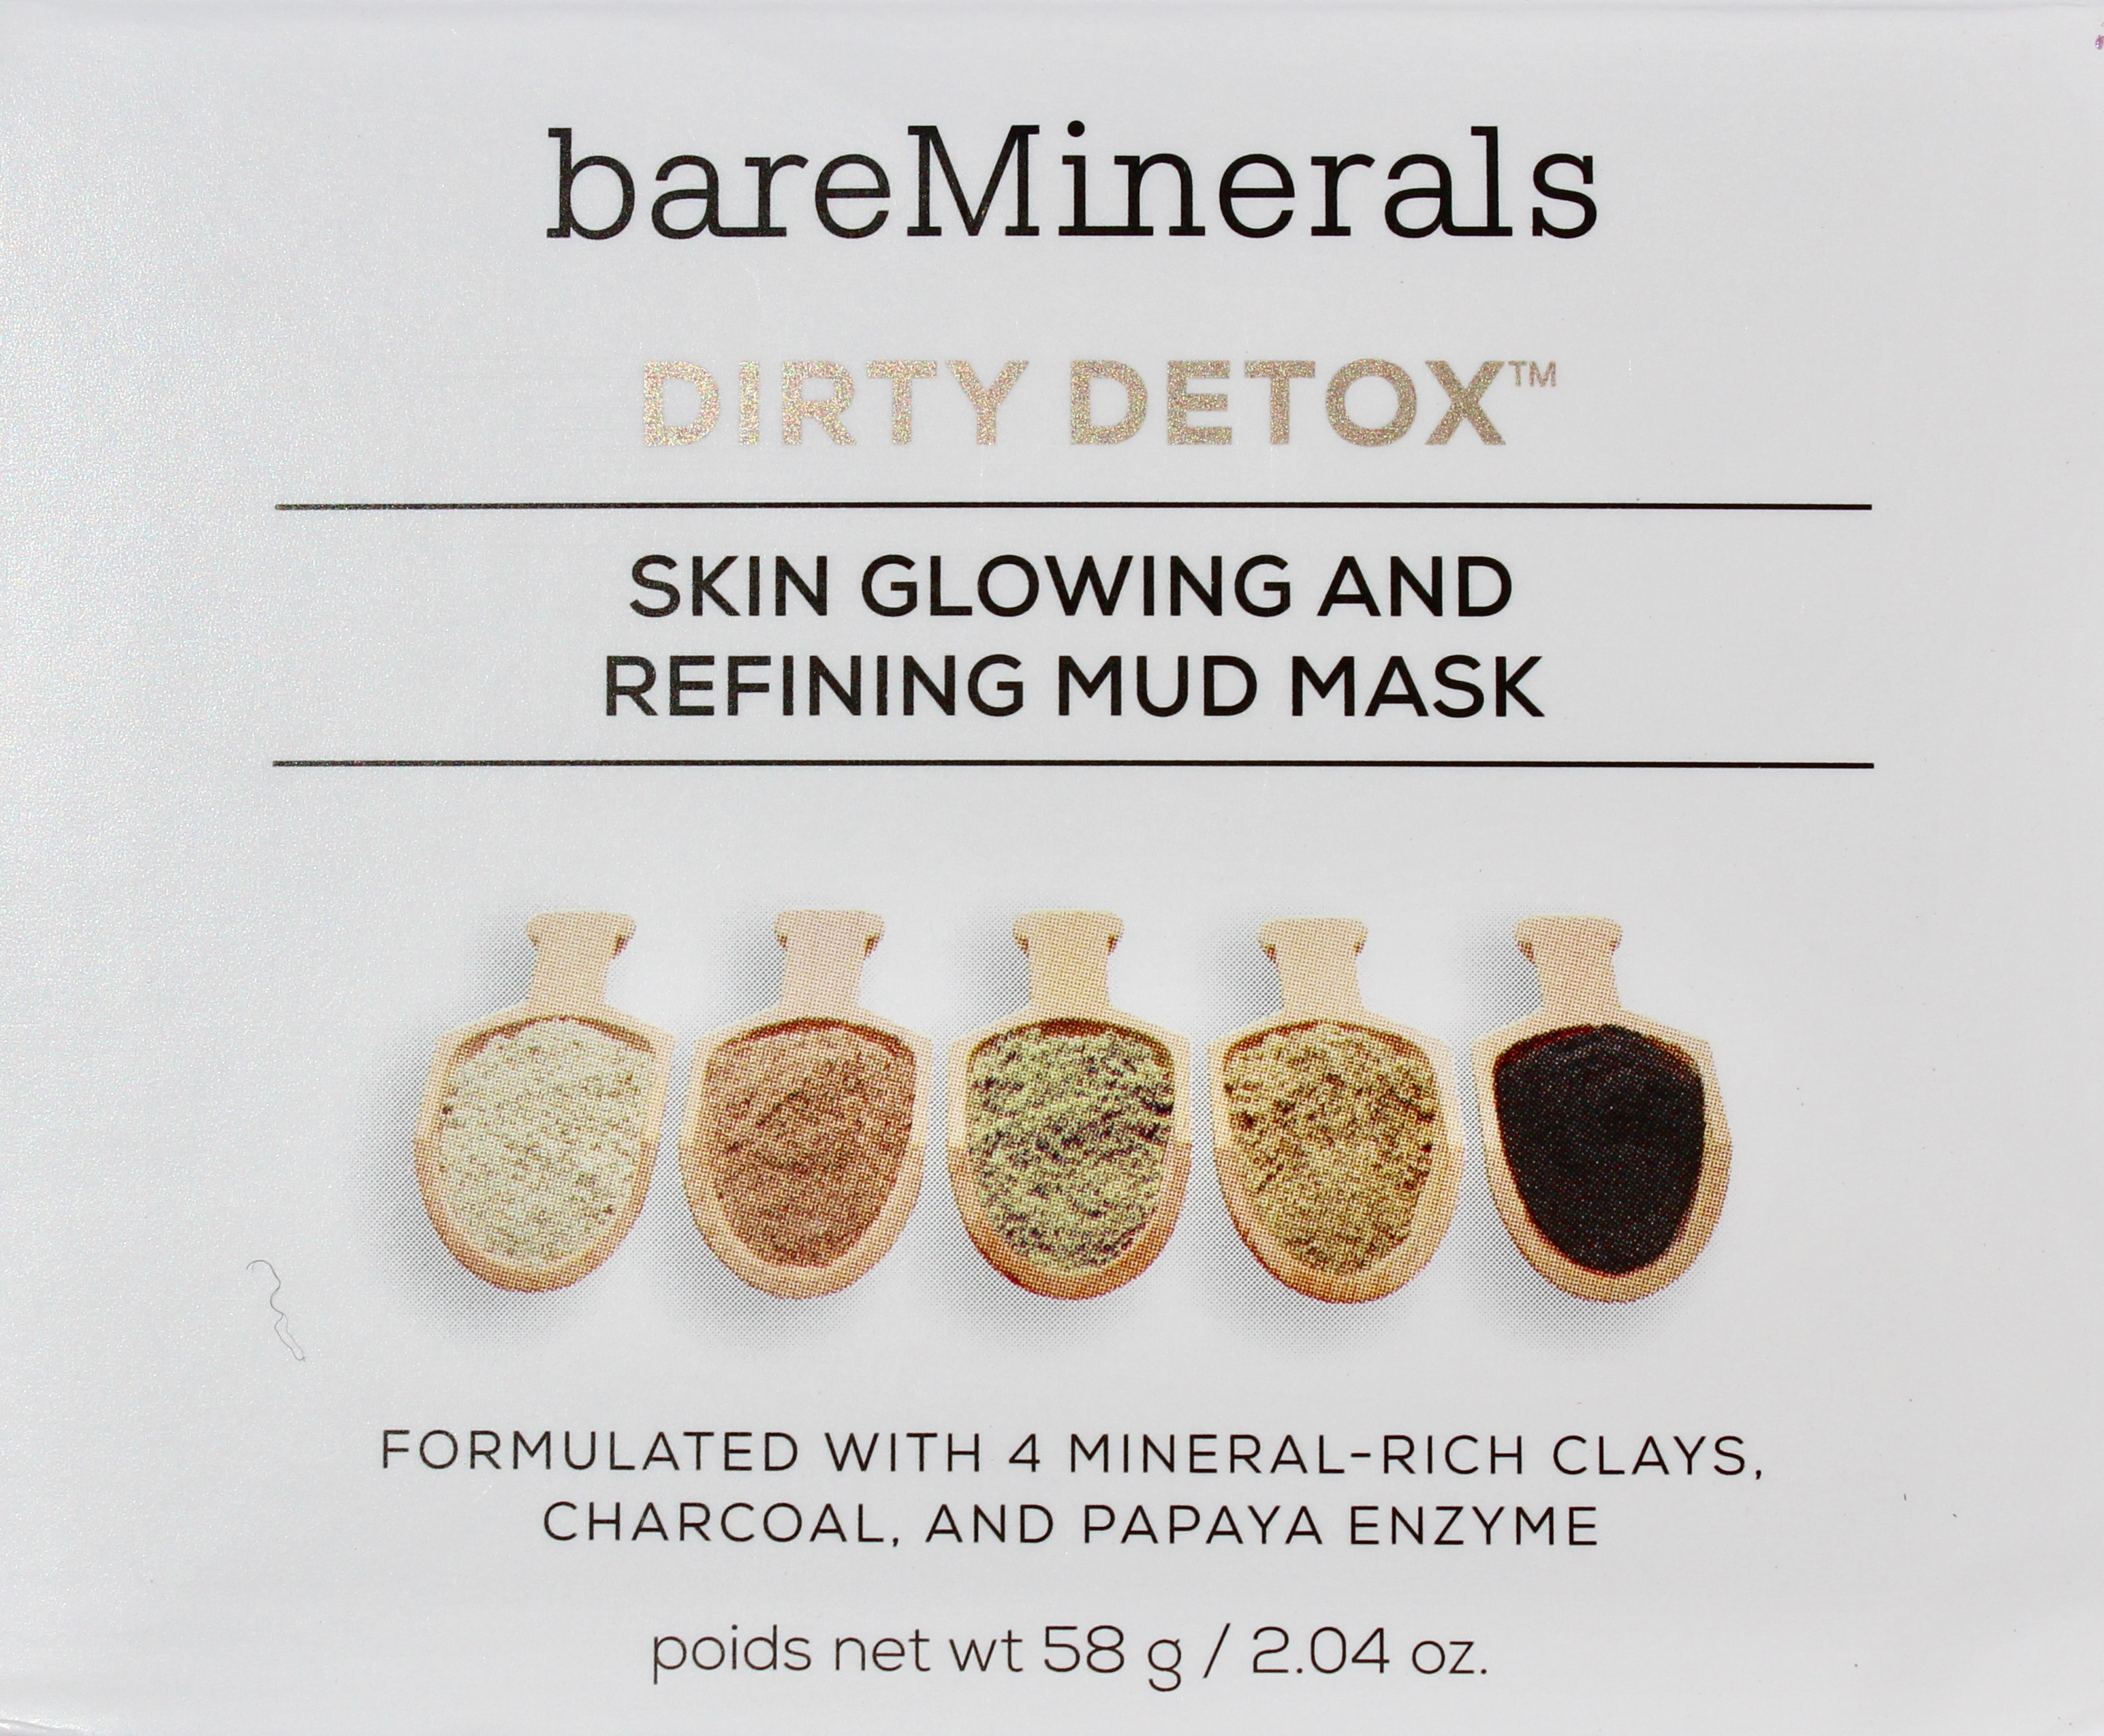 Dirty Detox Skin Glowing & Refining Mud Mask by bareMinerals #4